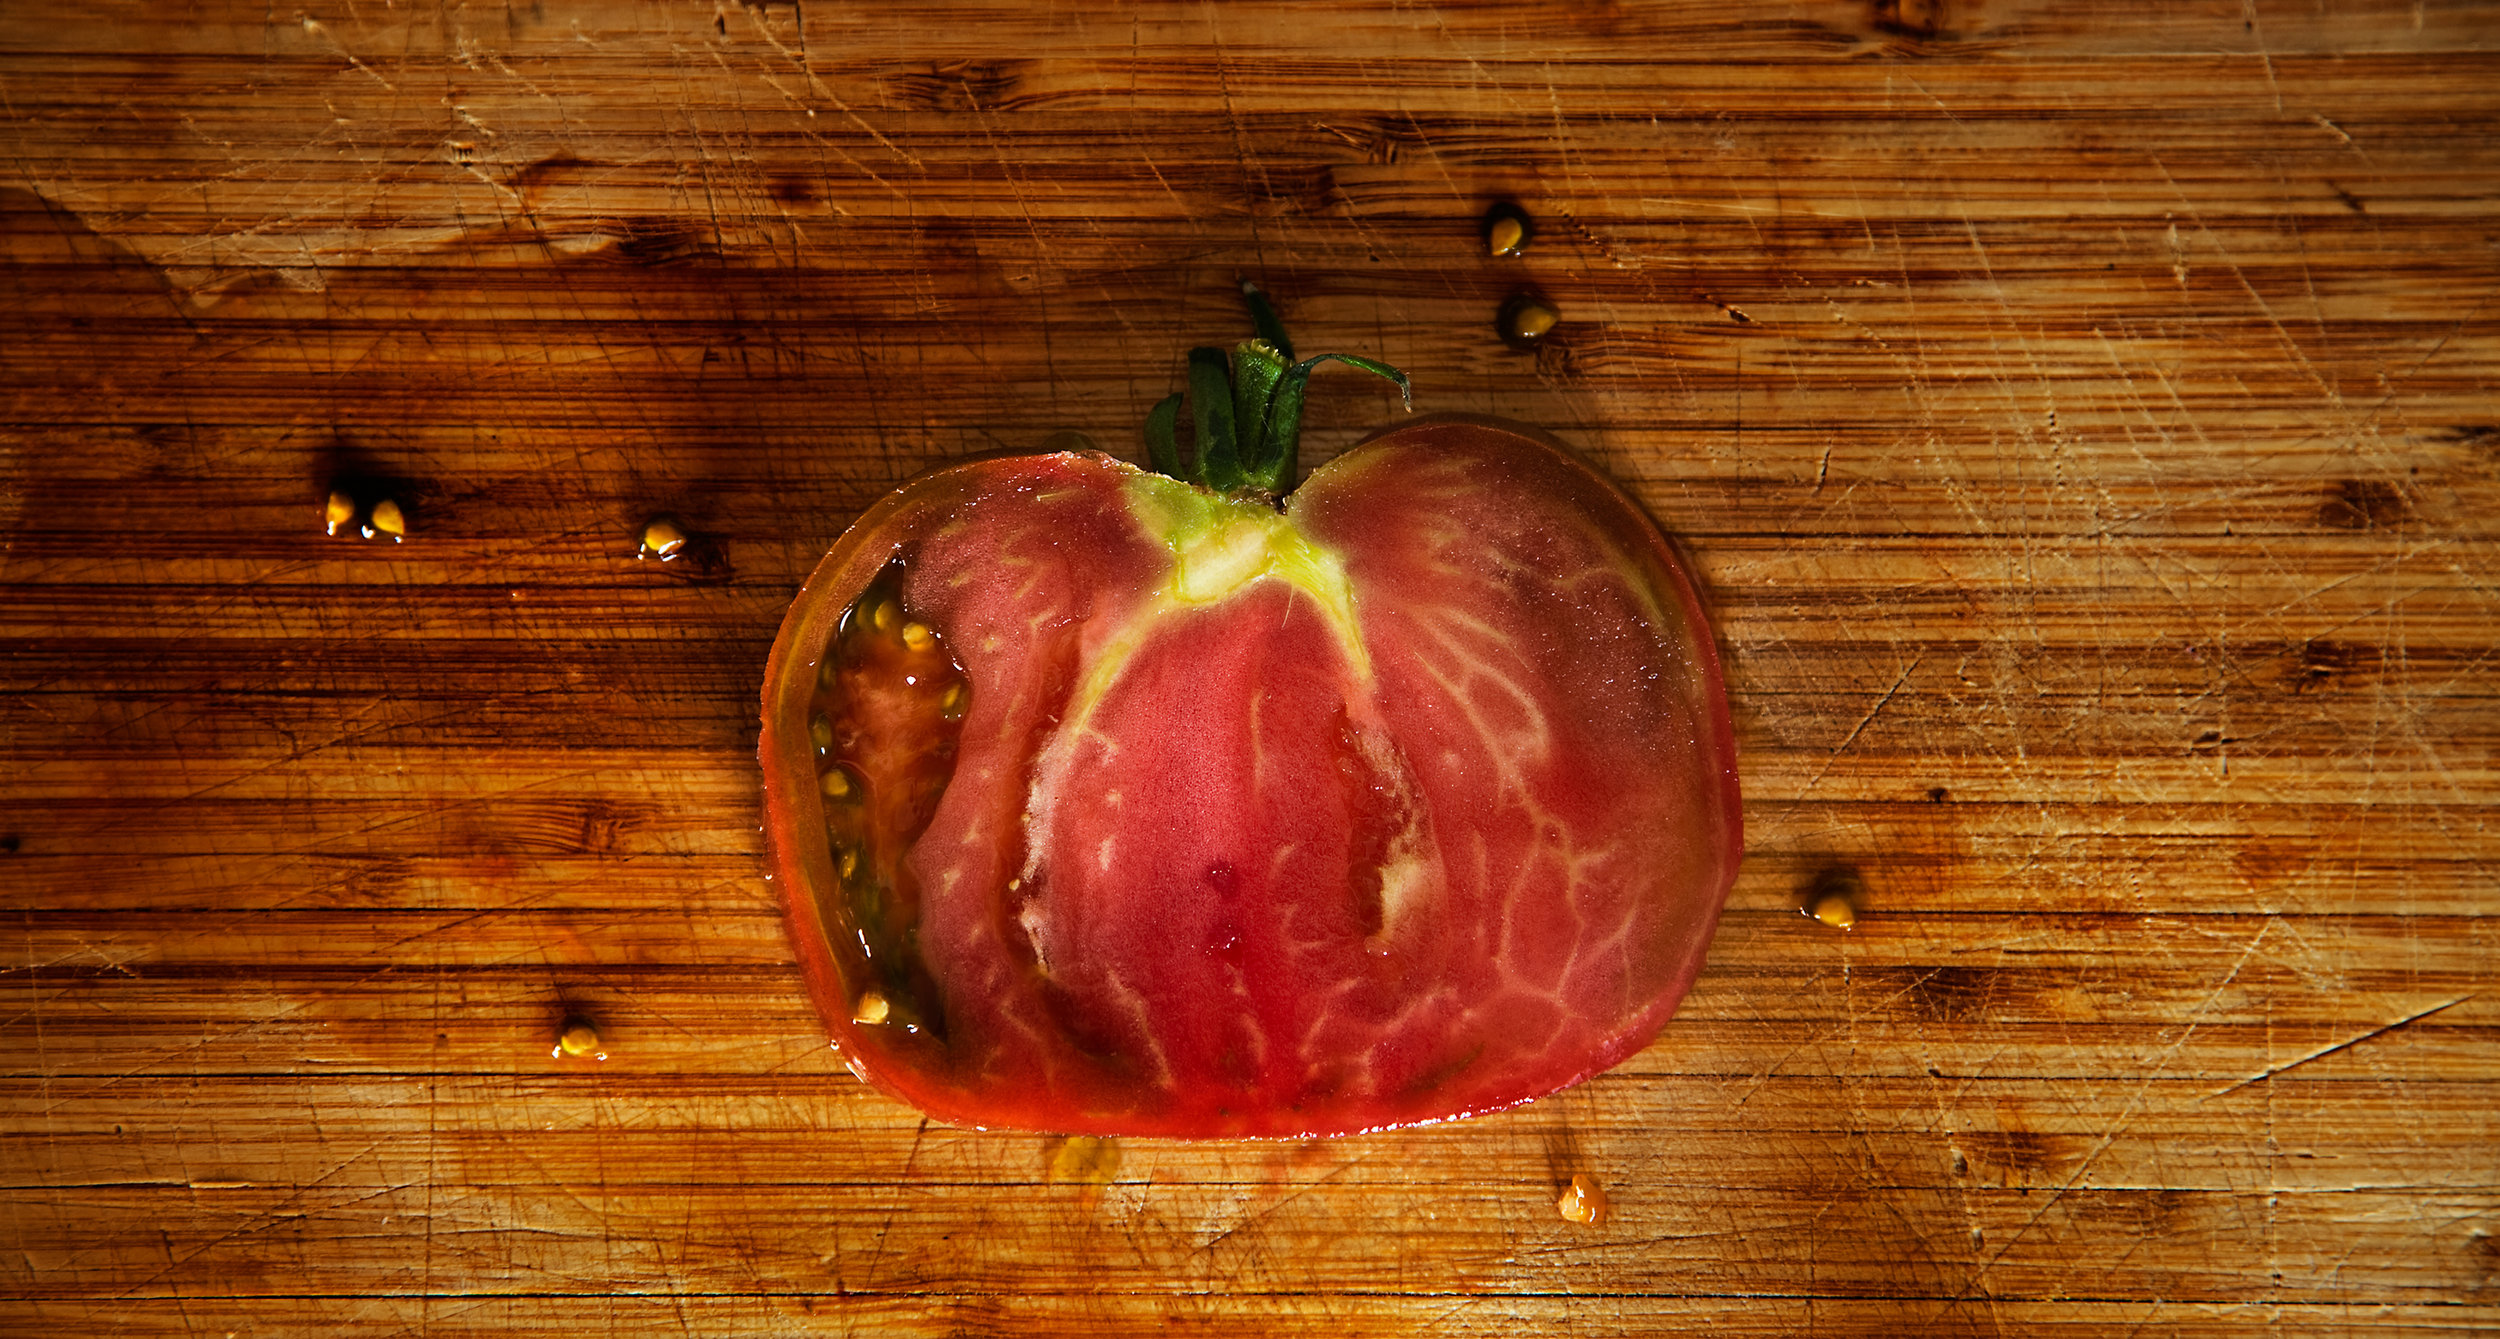 TOMATO-HEIRLOOM-ORGANIC-TOMATOES-FROM-THE-GARDEN-5-©-JONATHAN-R.-BECKERMAN-PHOTOGRAPHY.jpg